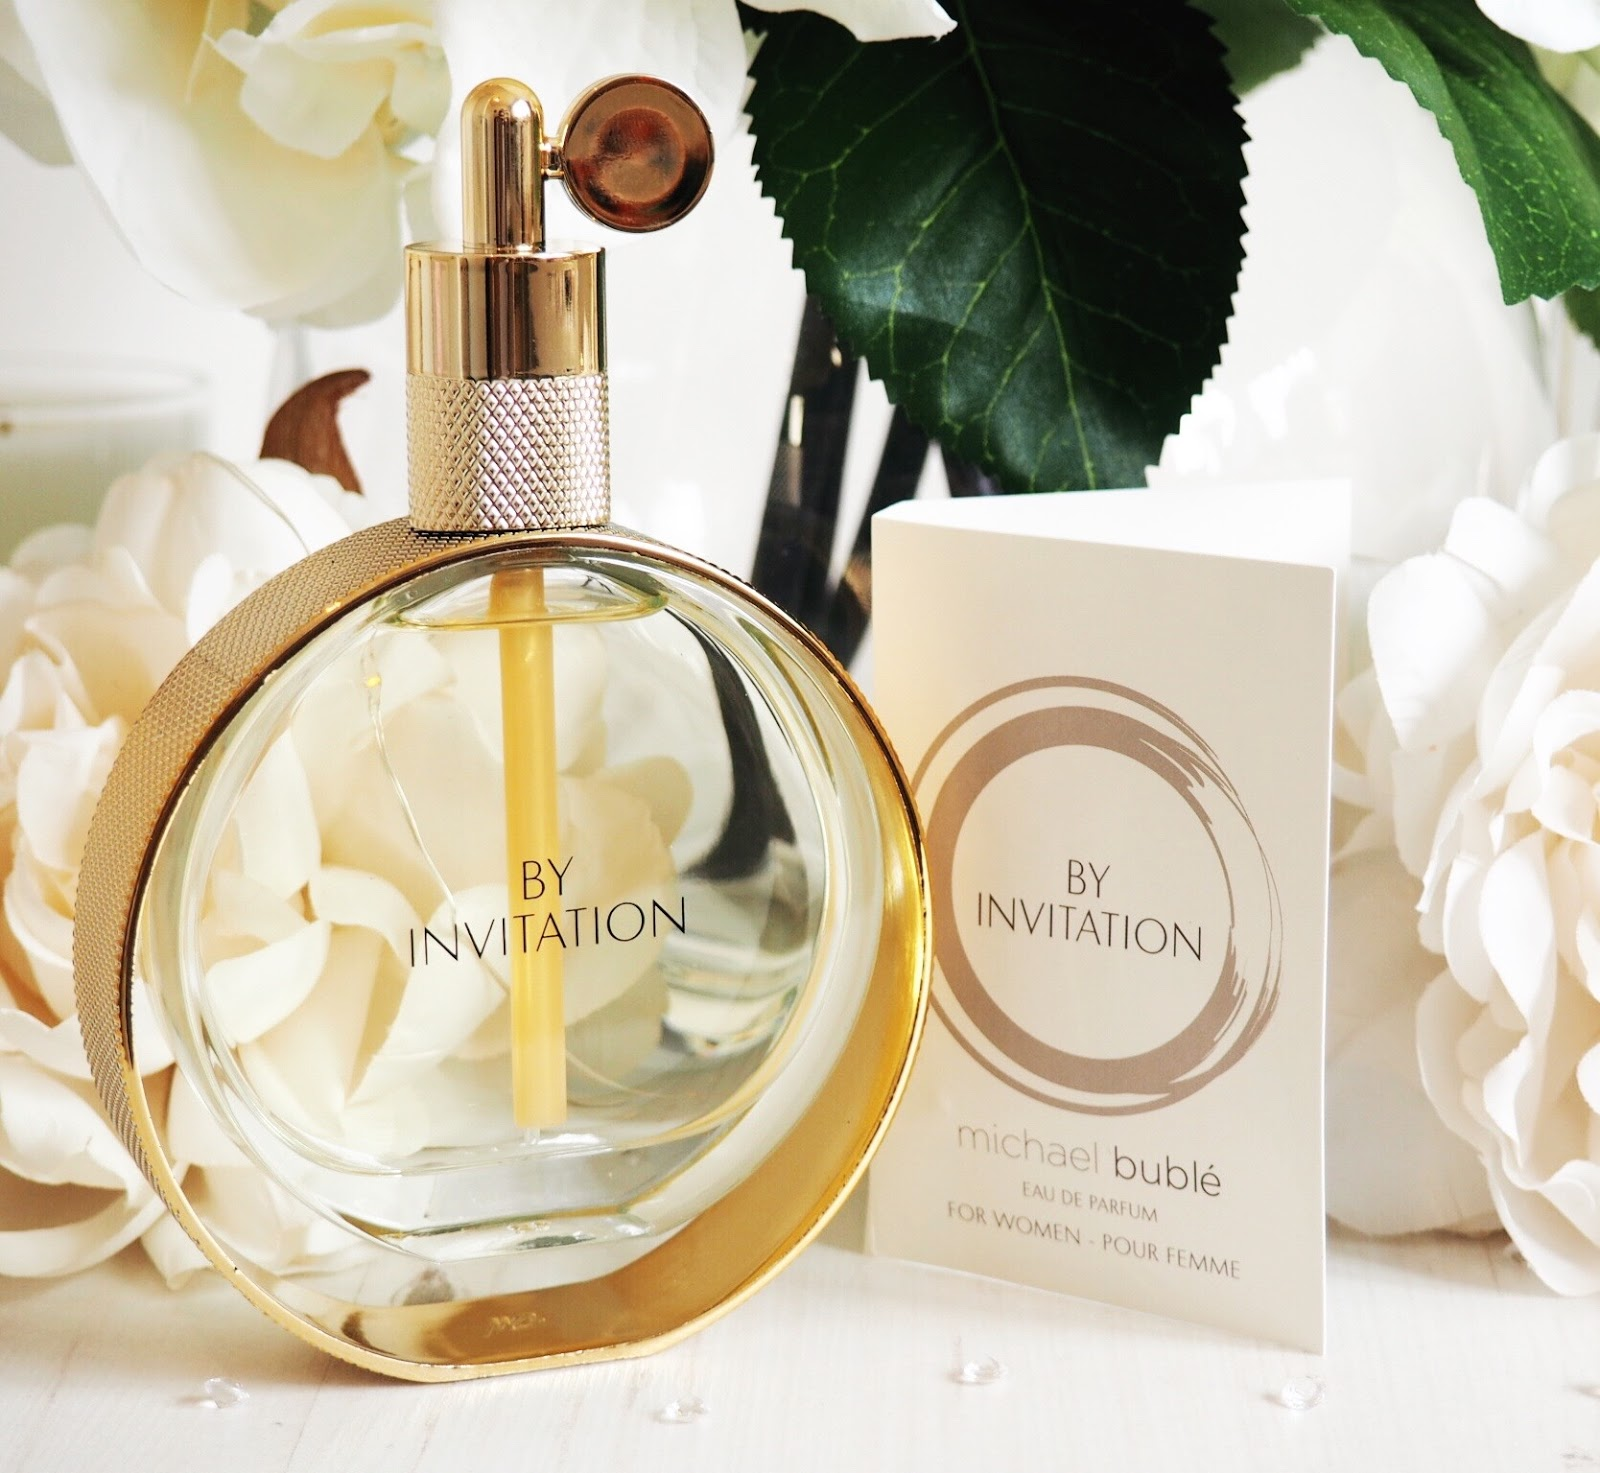 Michael buble by invitation perfume lady writes as a huge fan of his music michael can do no wrong in my eyes his songs bring out the romantic in me and by invitation was created to be a scent stopboris Choice Image